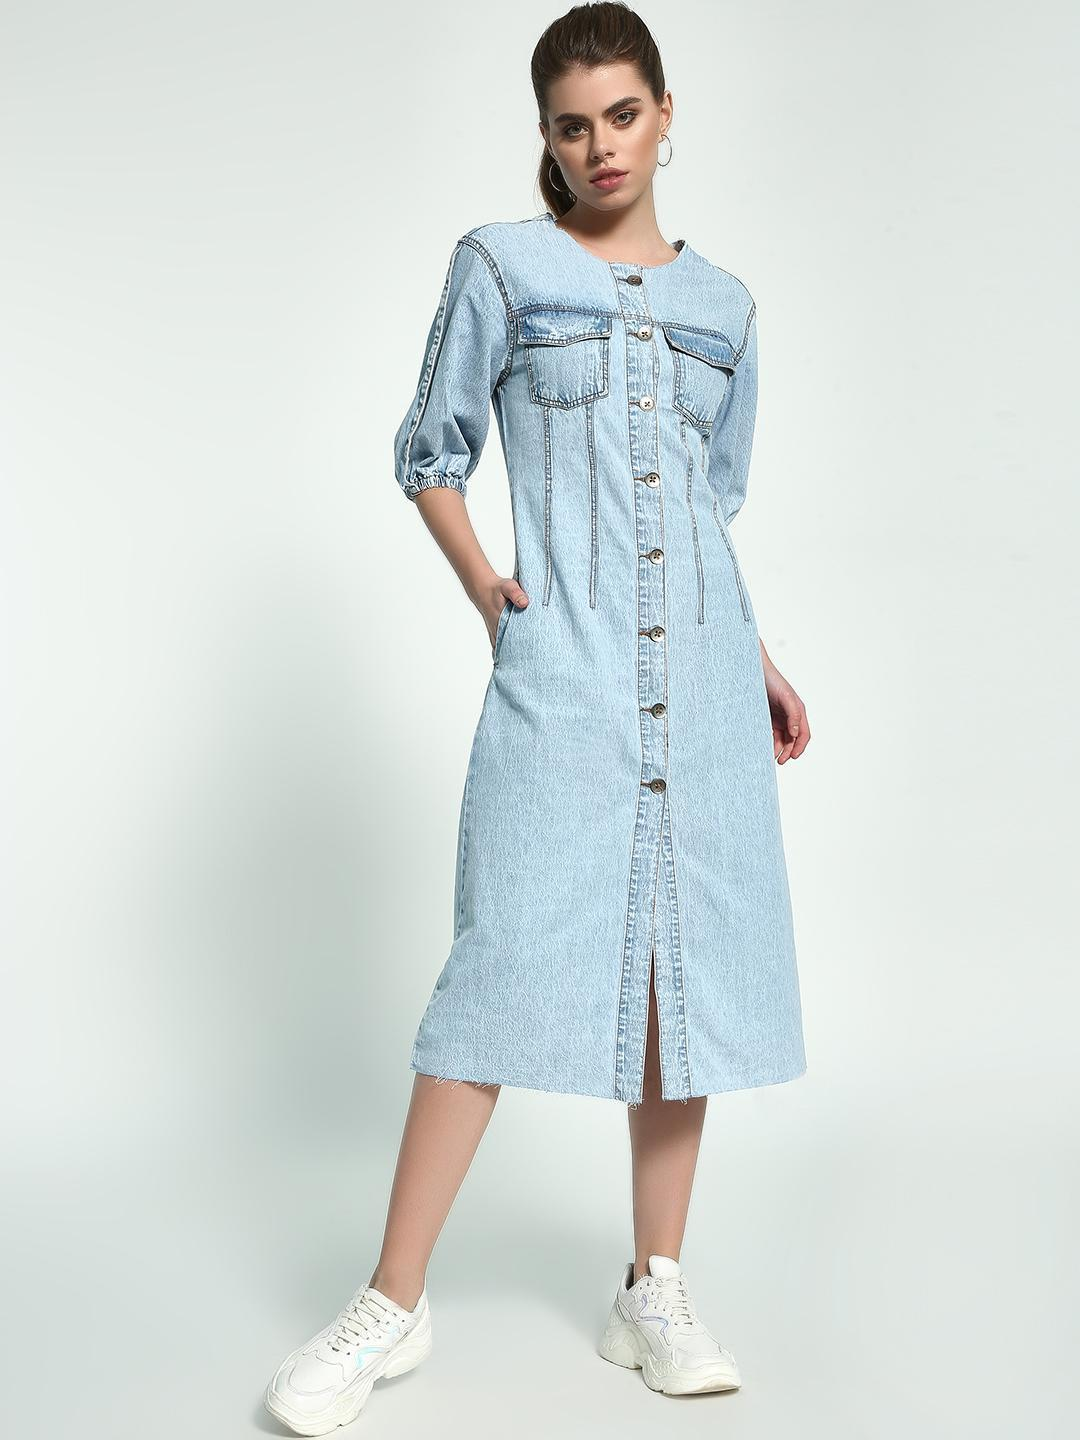 K Denim Light Blue Acid Wash Utility Denim Dress 1